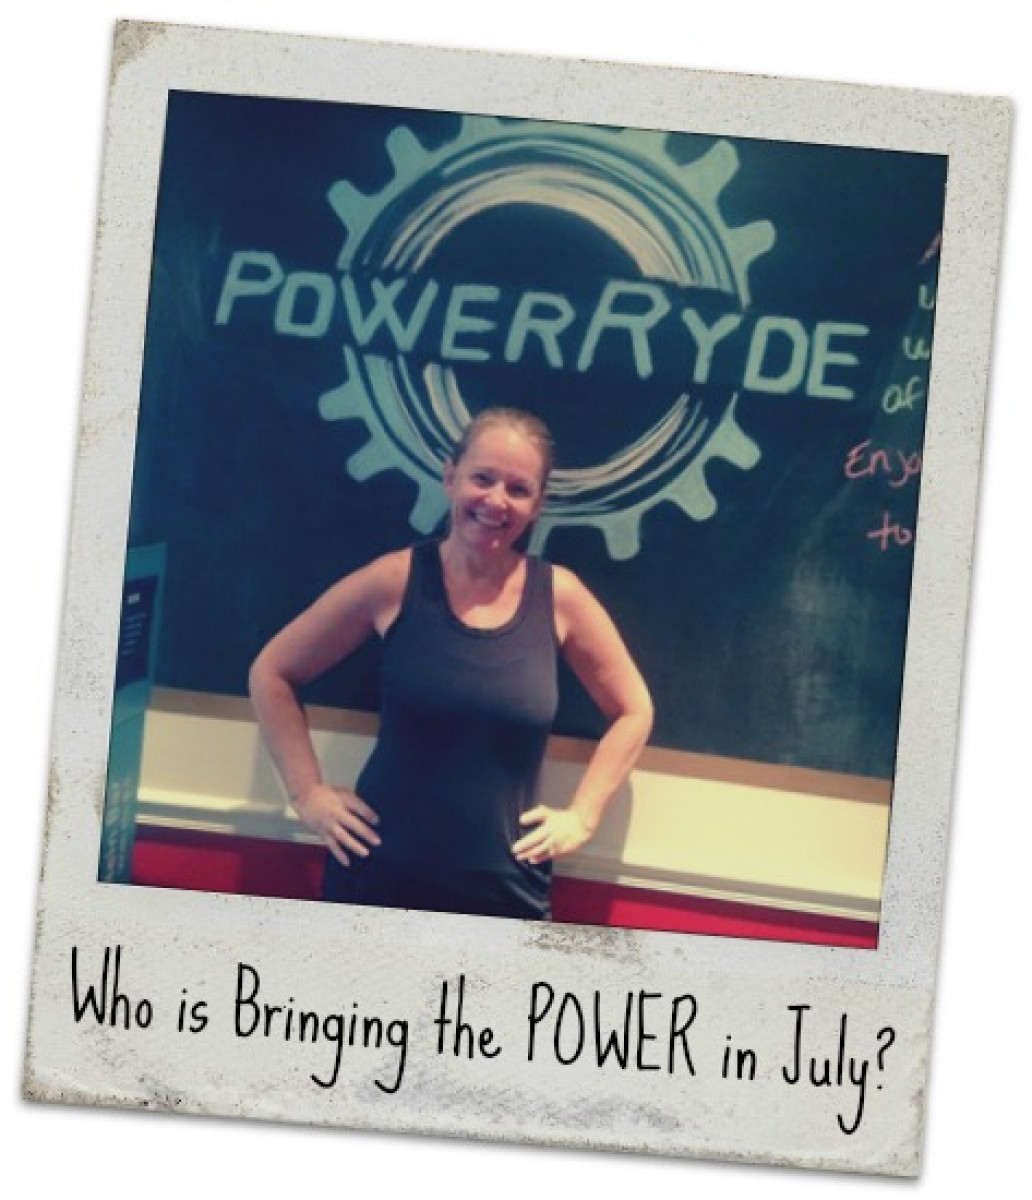 Who's Bringing the POWER in July?